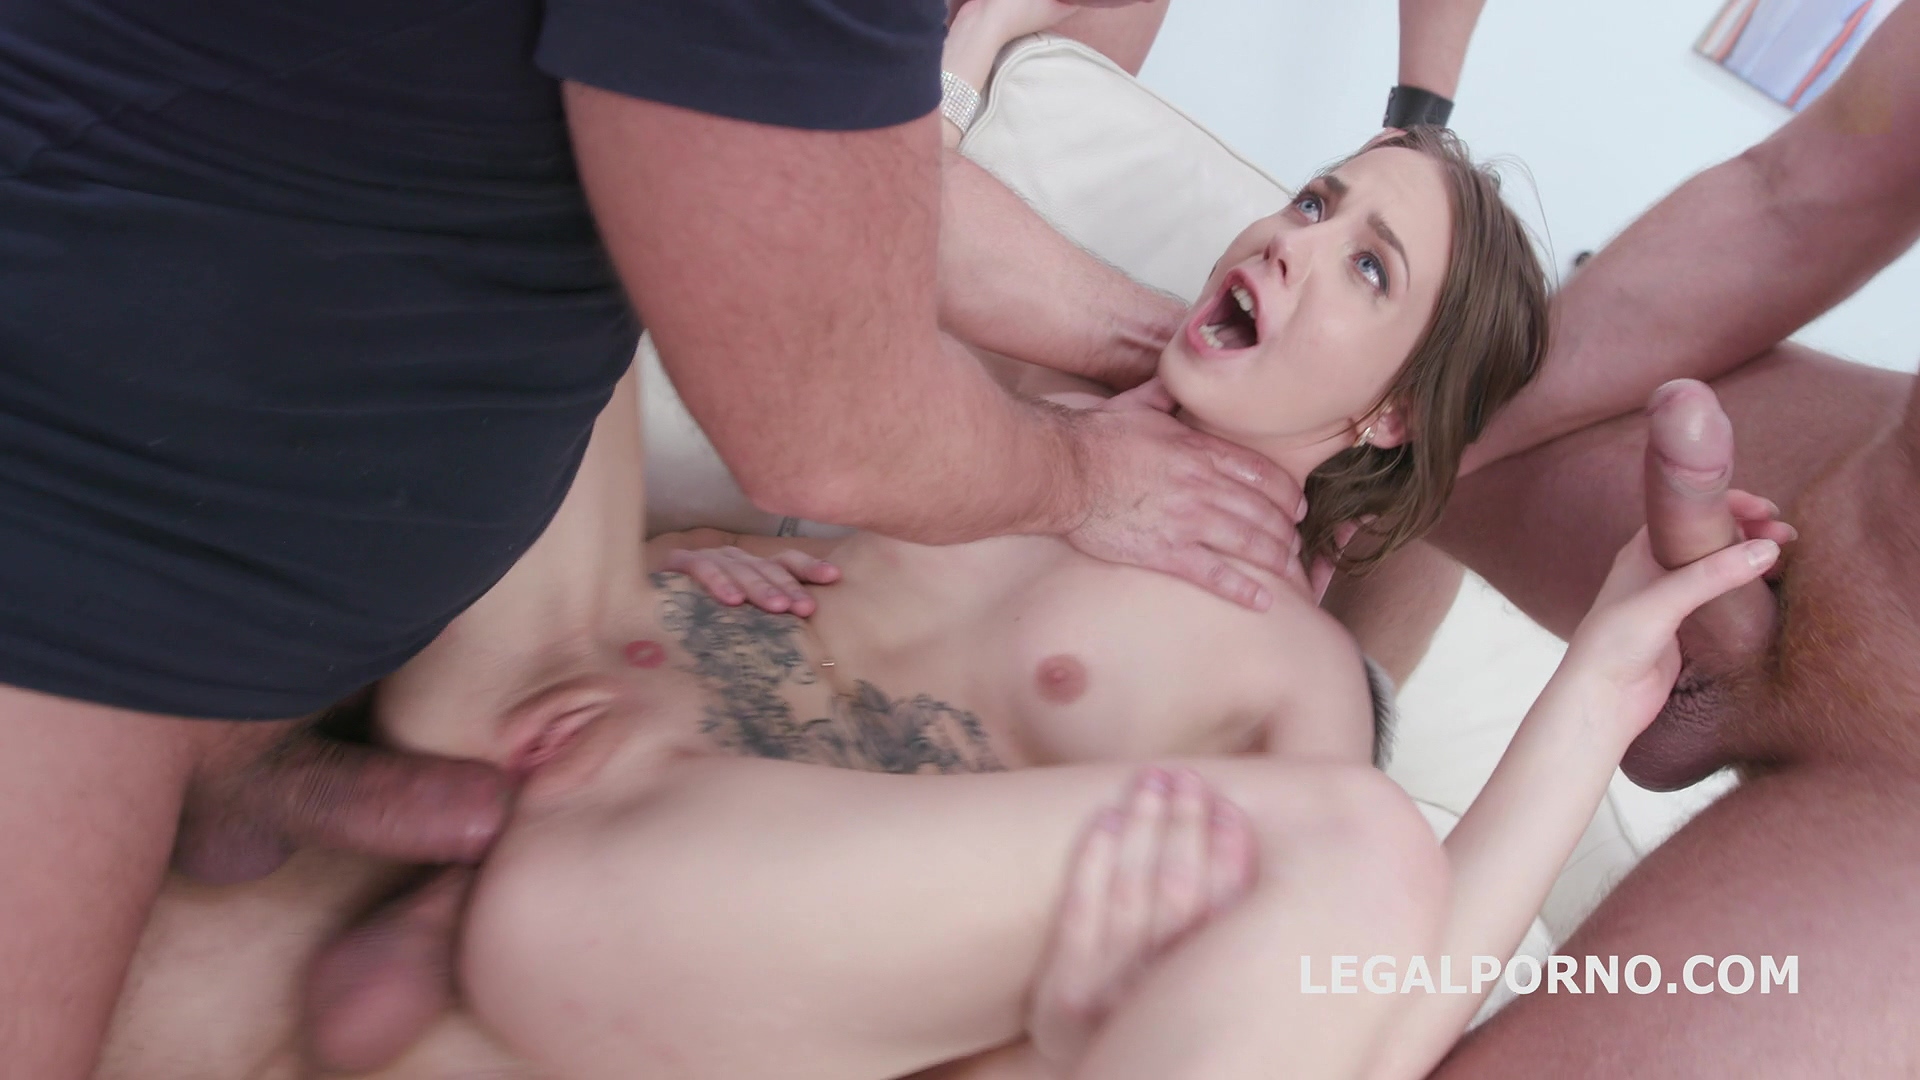 dap_destination_stasia_si_first_time_dap_with_balls_deep_anal_gapes_and_creampie_swallow_gio1393_fhd_mp4_20200317_113007_208.jpg